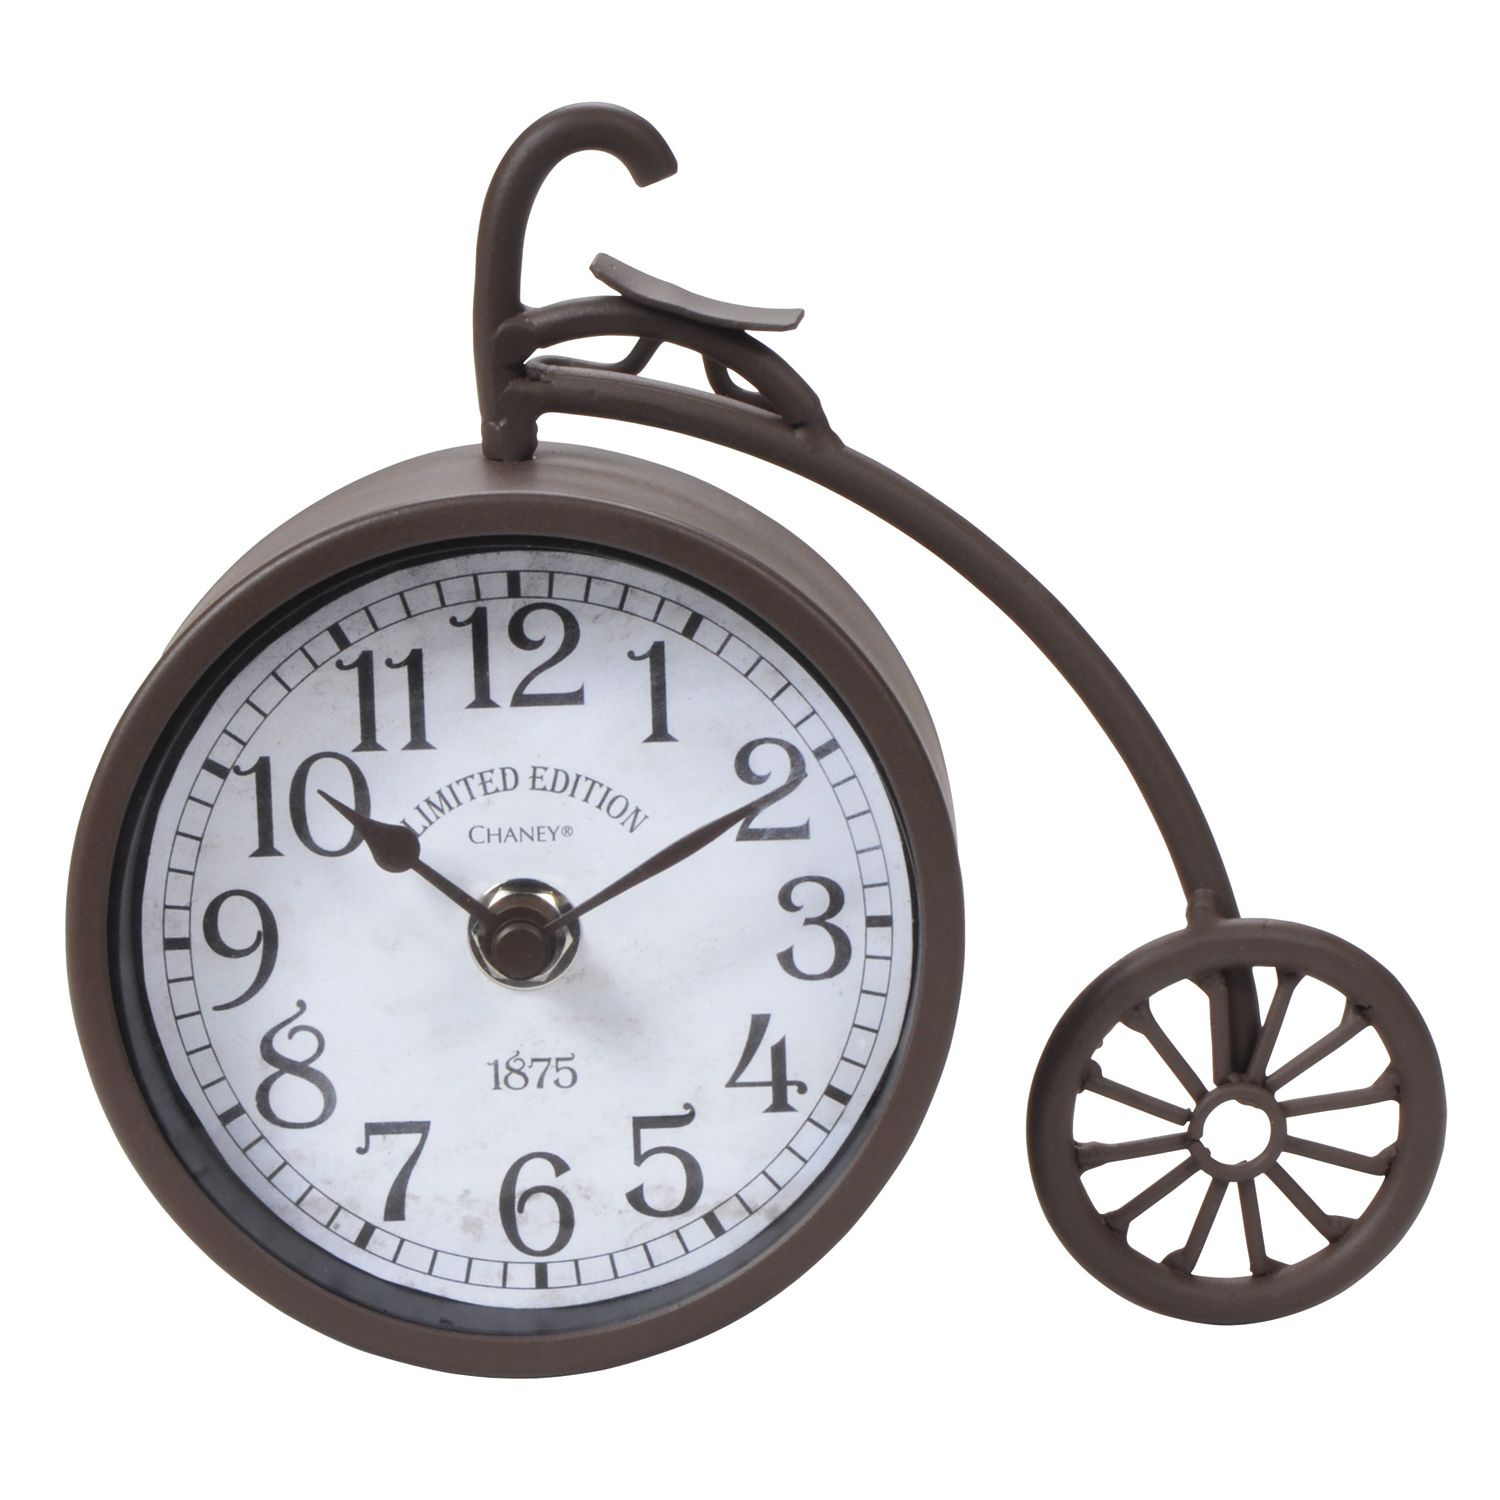 28 wall clock images home wall decoration ideas chaney wall clock kohls 28 bicycle wall clock giftcraft antique high wheel bicycle amipublicfo images amipublicfo Choice Image